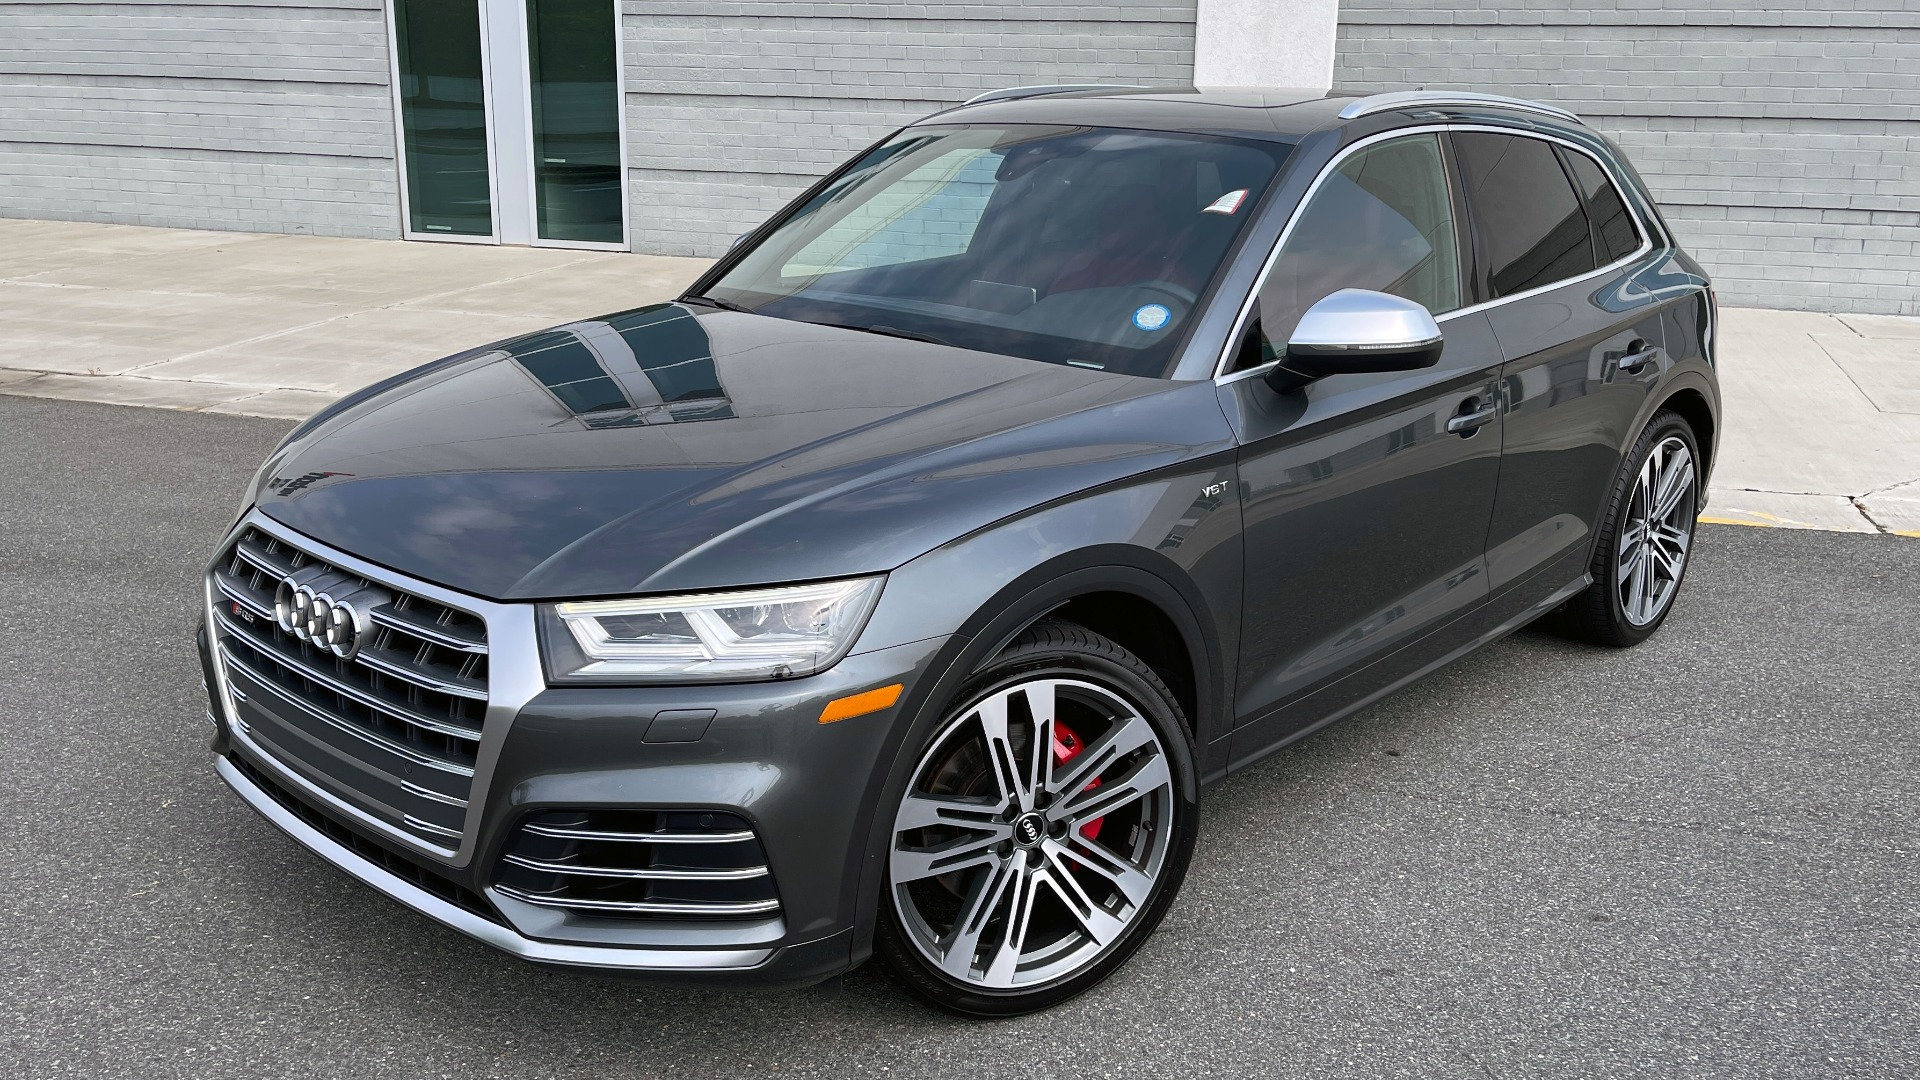 Used 2018 Audi SQ5 PREMIUM PLUS / S-SPORT / NAV / B&O SND / SUNROOF / REARVIEW for sale $43,995 at Formula Imports in Charlotte NC 28227 6